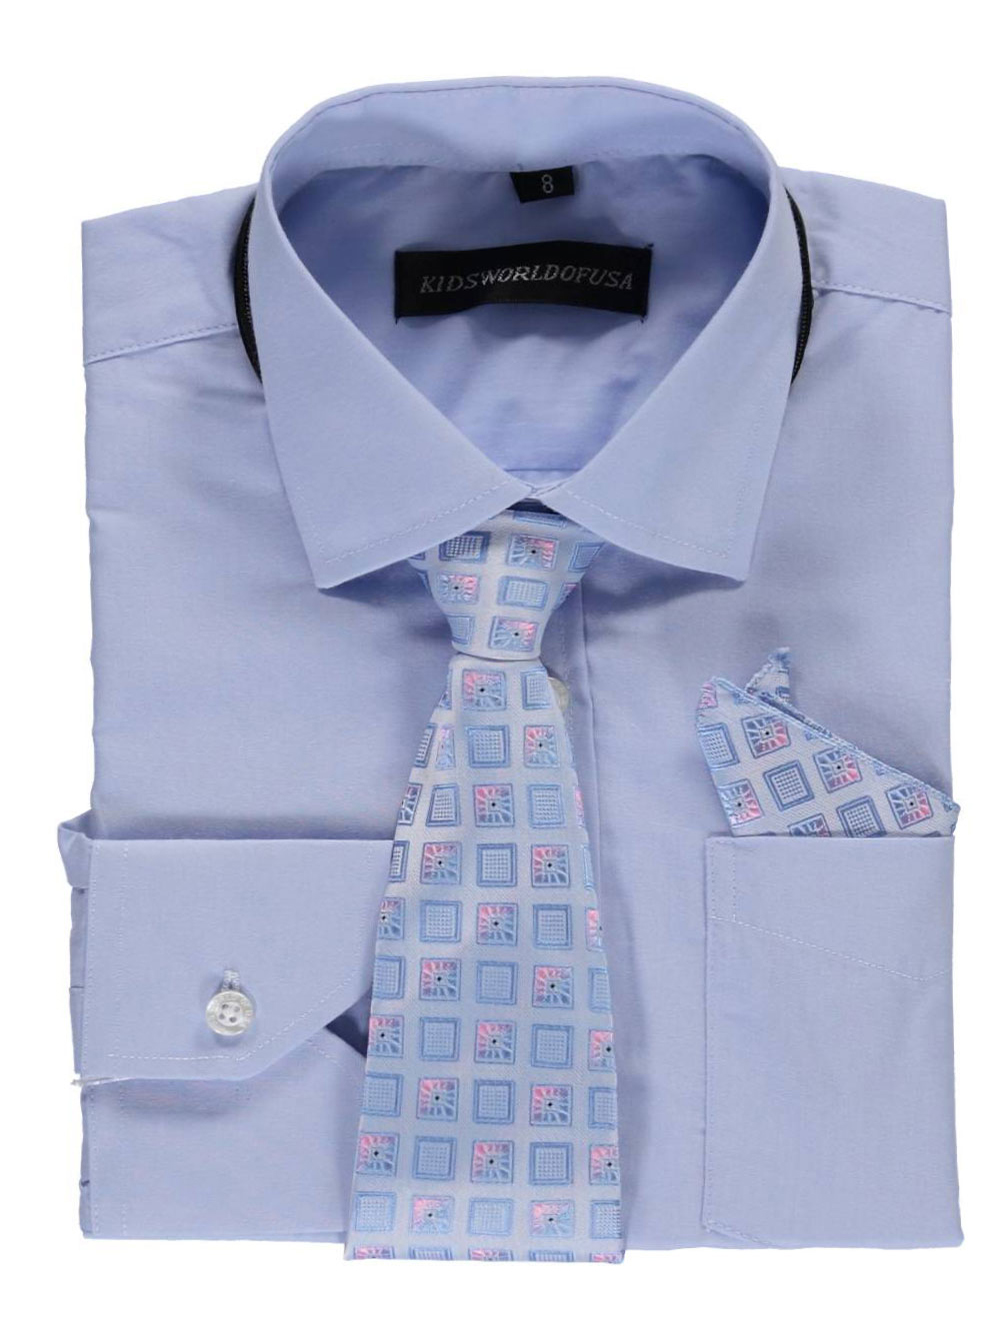 Kids World Big Boys' Dress Shirt with Accessories (Sizes 8 - 20) - light blue, 18